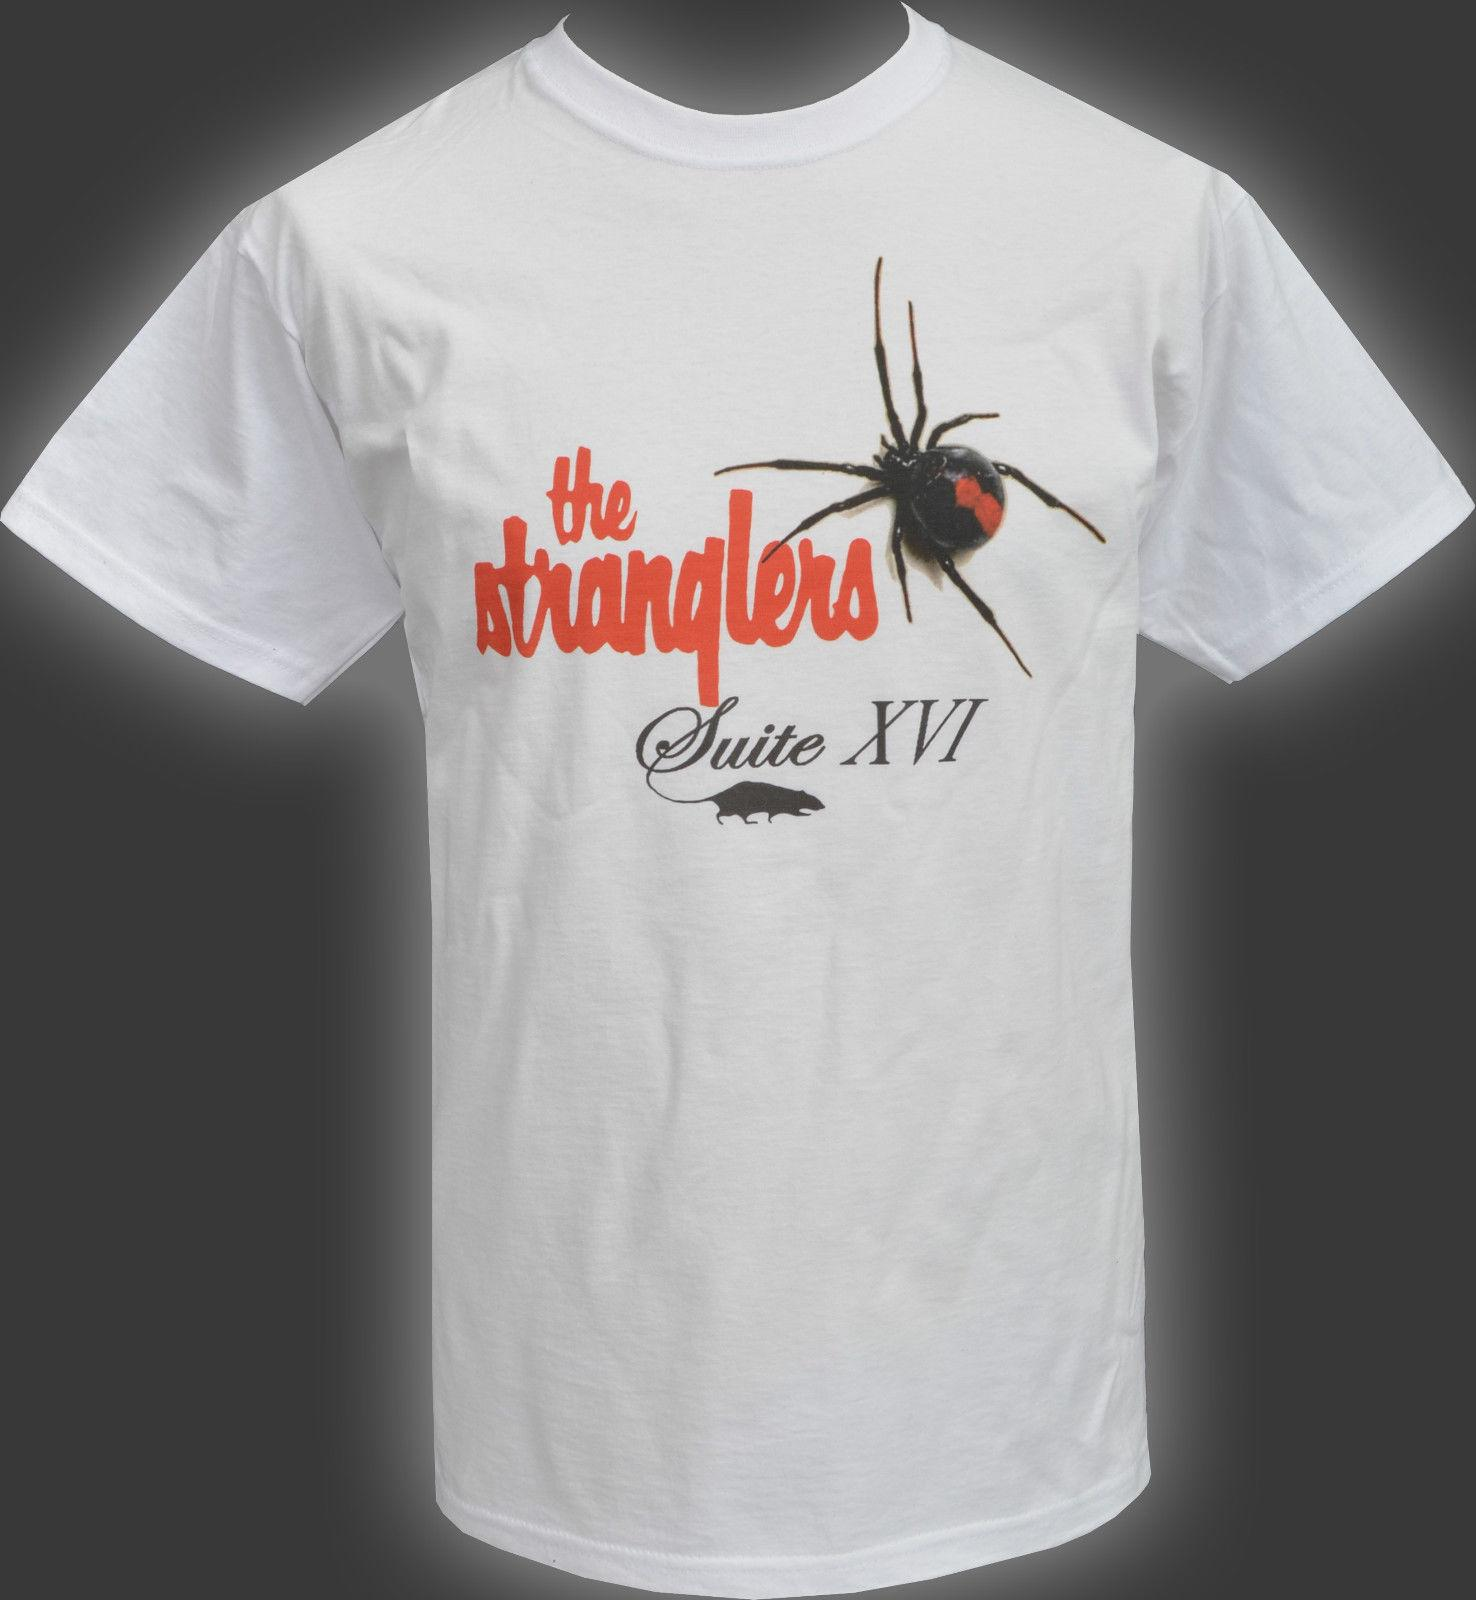 Mens White T Shirt The Stranglers Suite Xvi Black Widow Spider Rat Punk Rock Funny Free Shipping Unisex Casual Tshirt Top